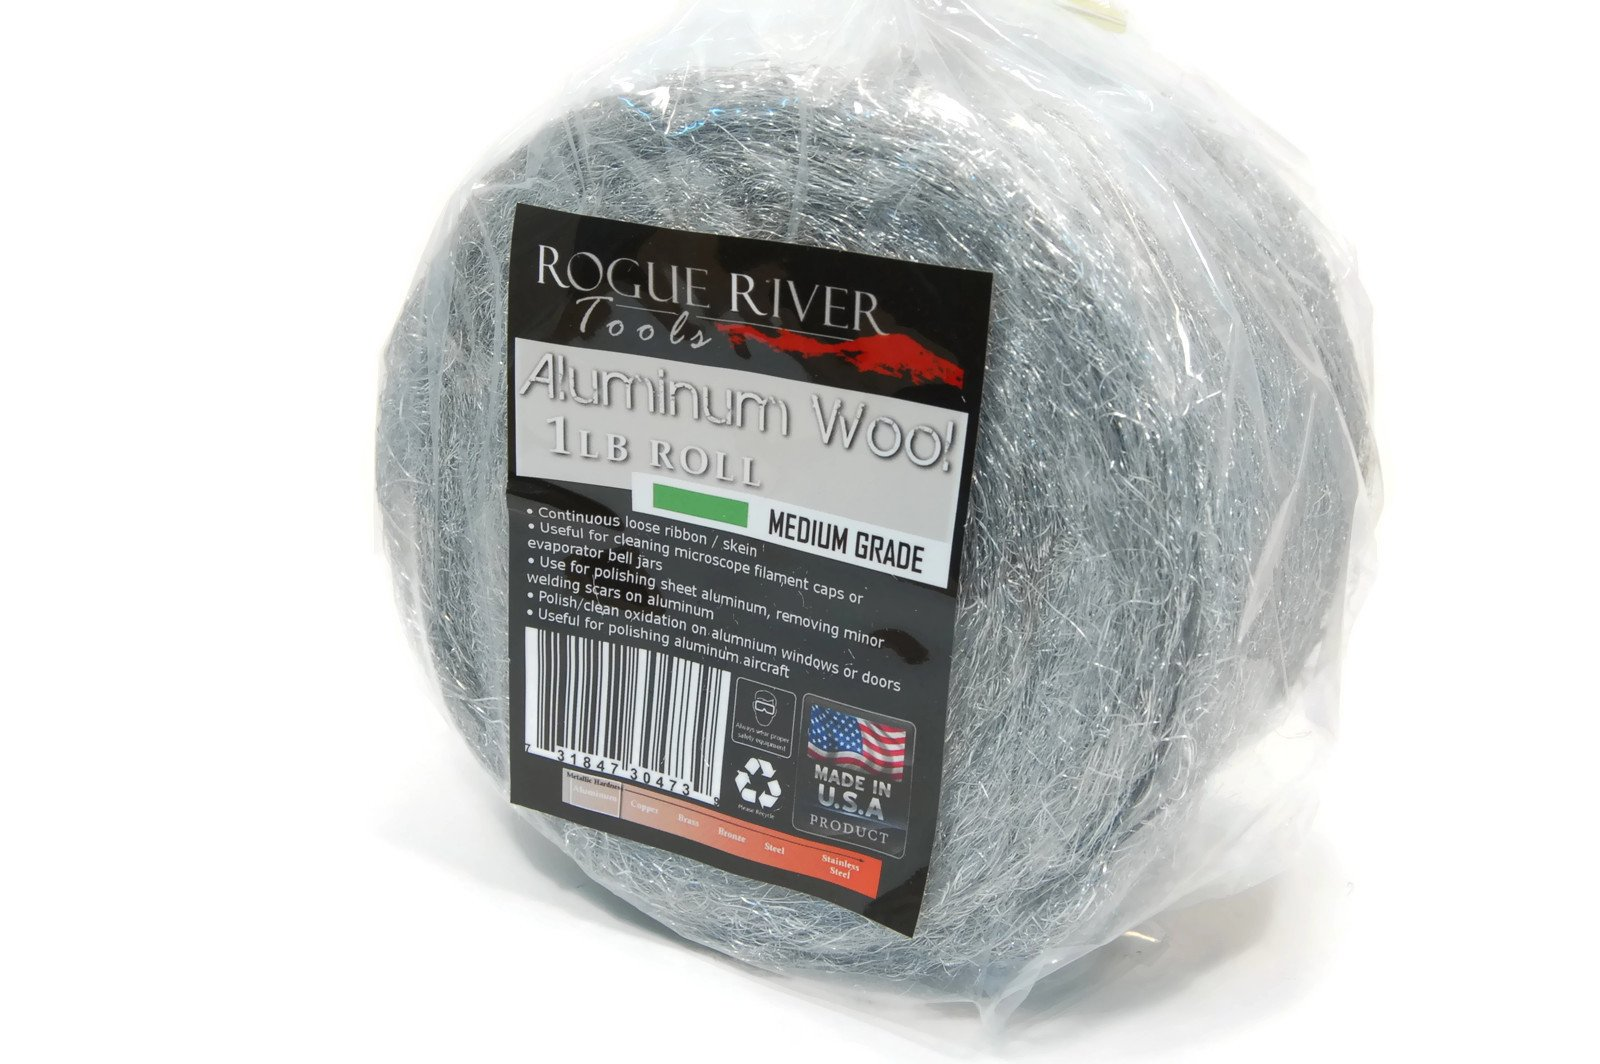 Rogue River Tools Aluminum Wool 1lb Roll - Medium